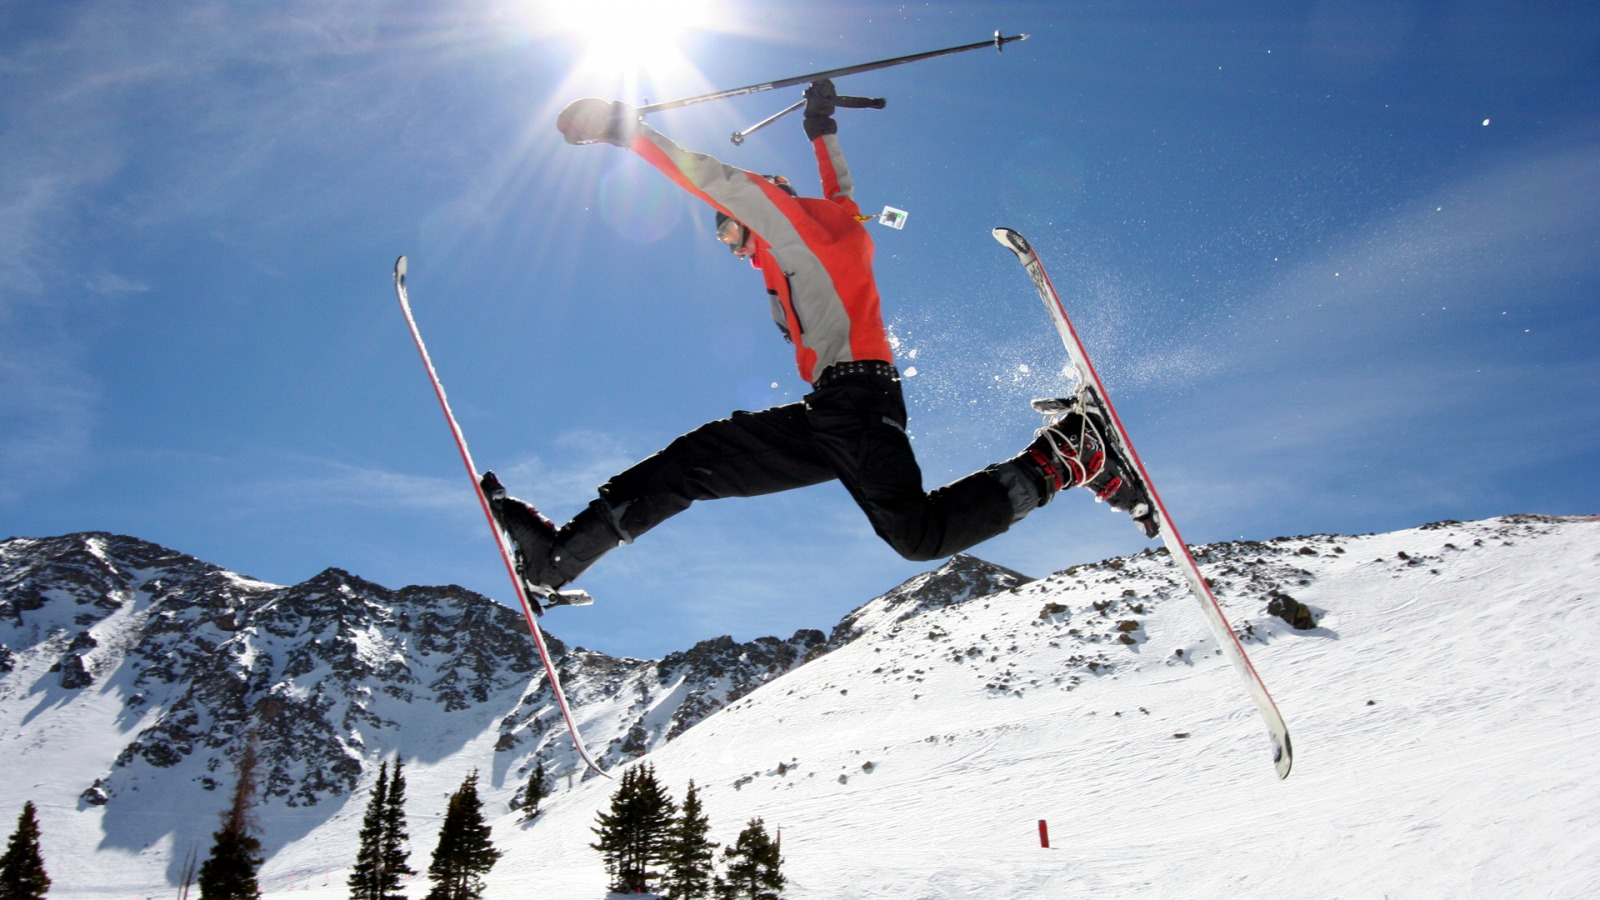 Skiing Wallpaper Ski Jump Wallpaper Ski Sports Wallpapers In Jpg Format For Free